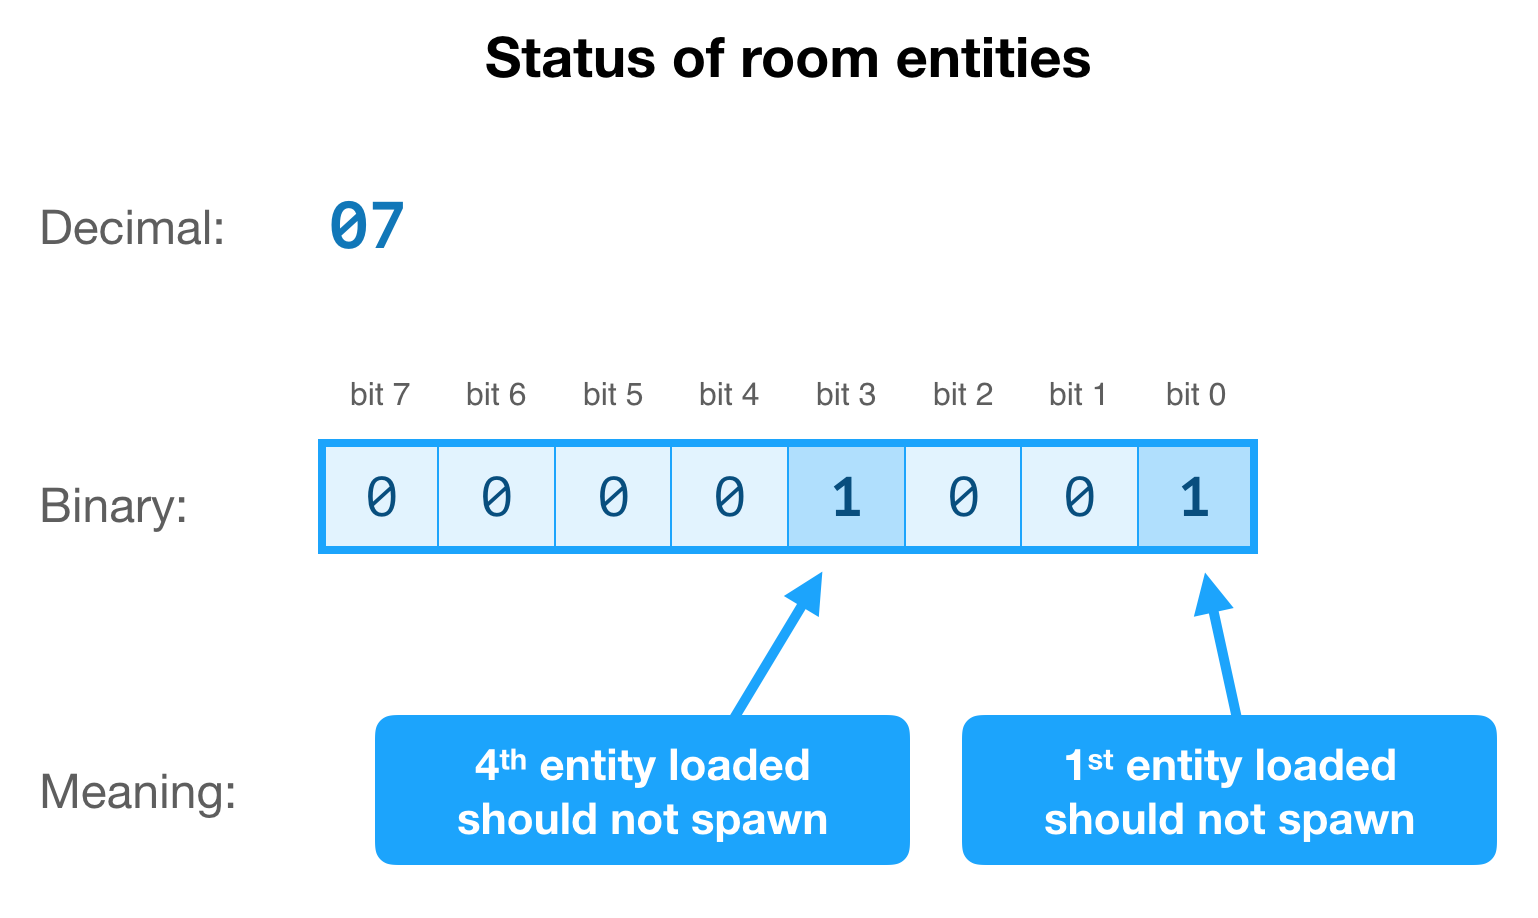 A diagram of how the entities load order is encoded